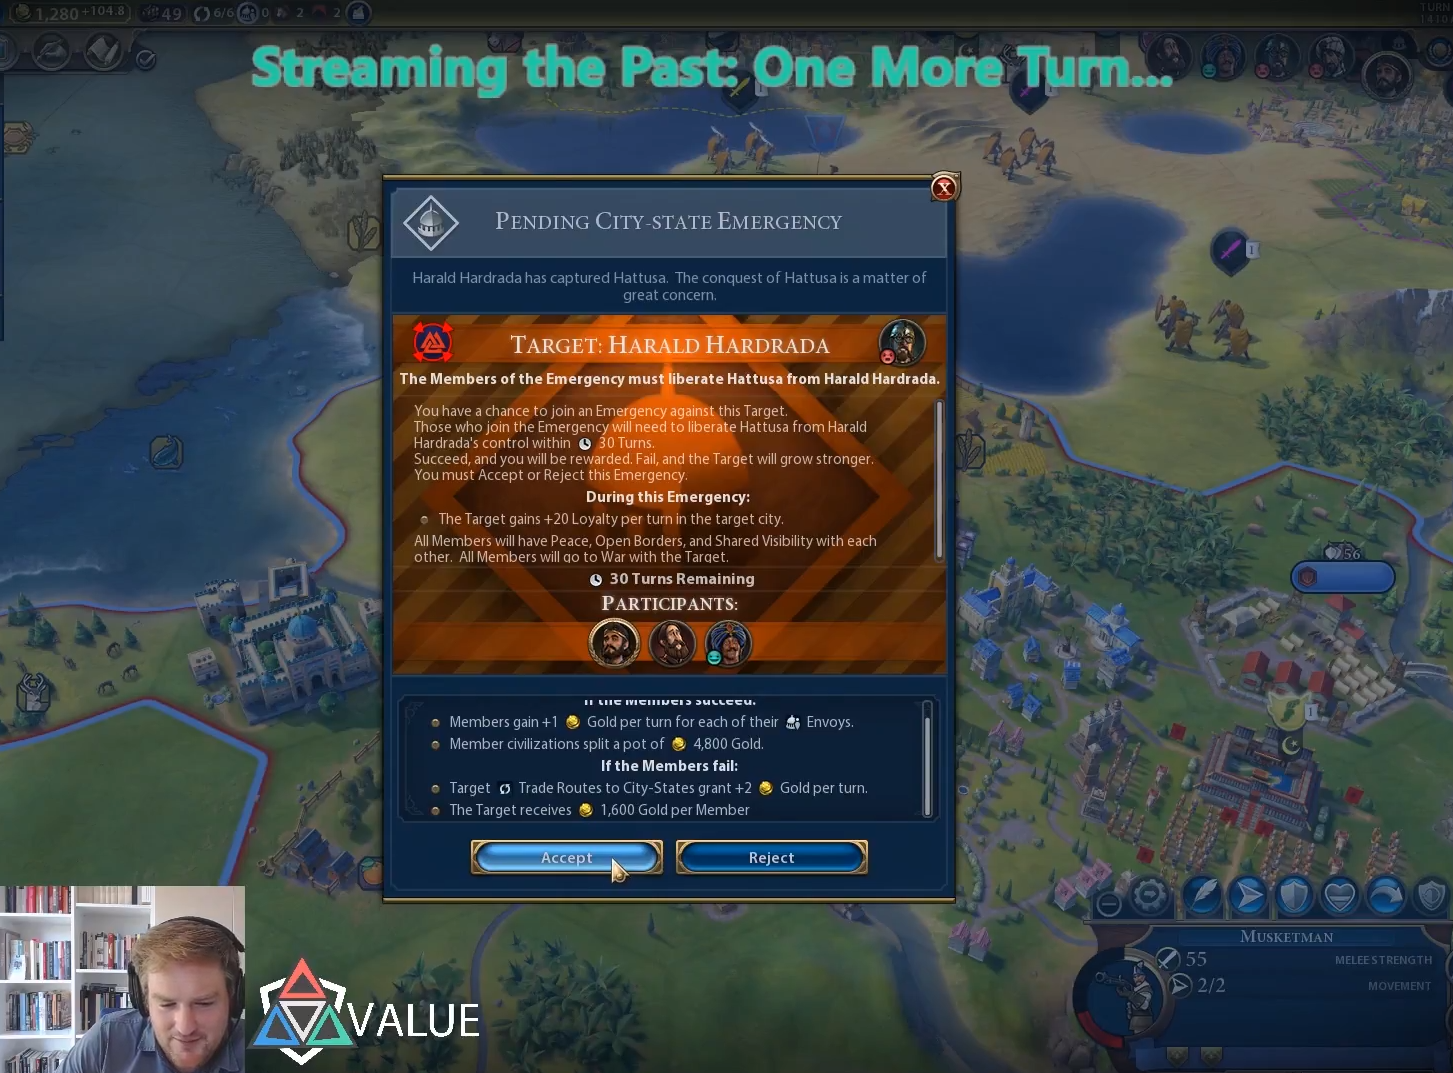 Streaming the Past: One More Turn 9